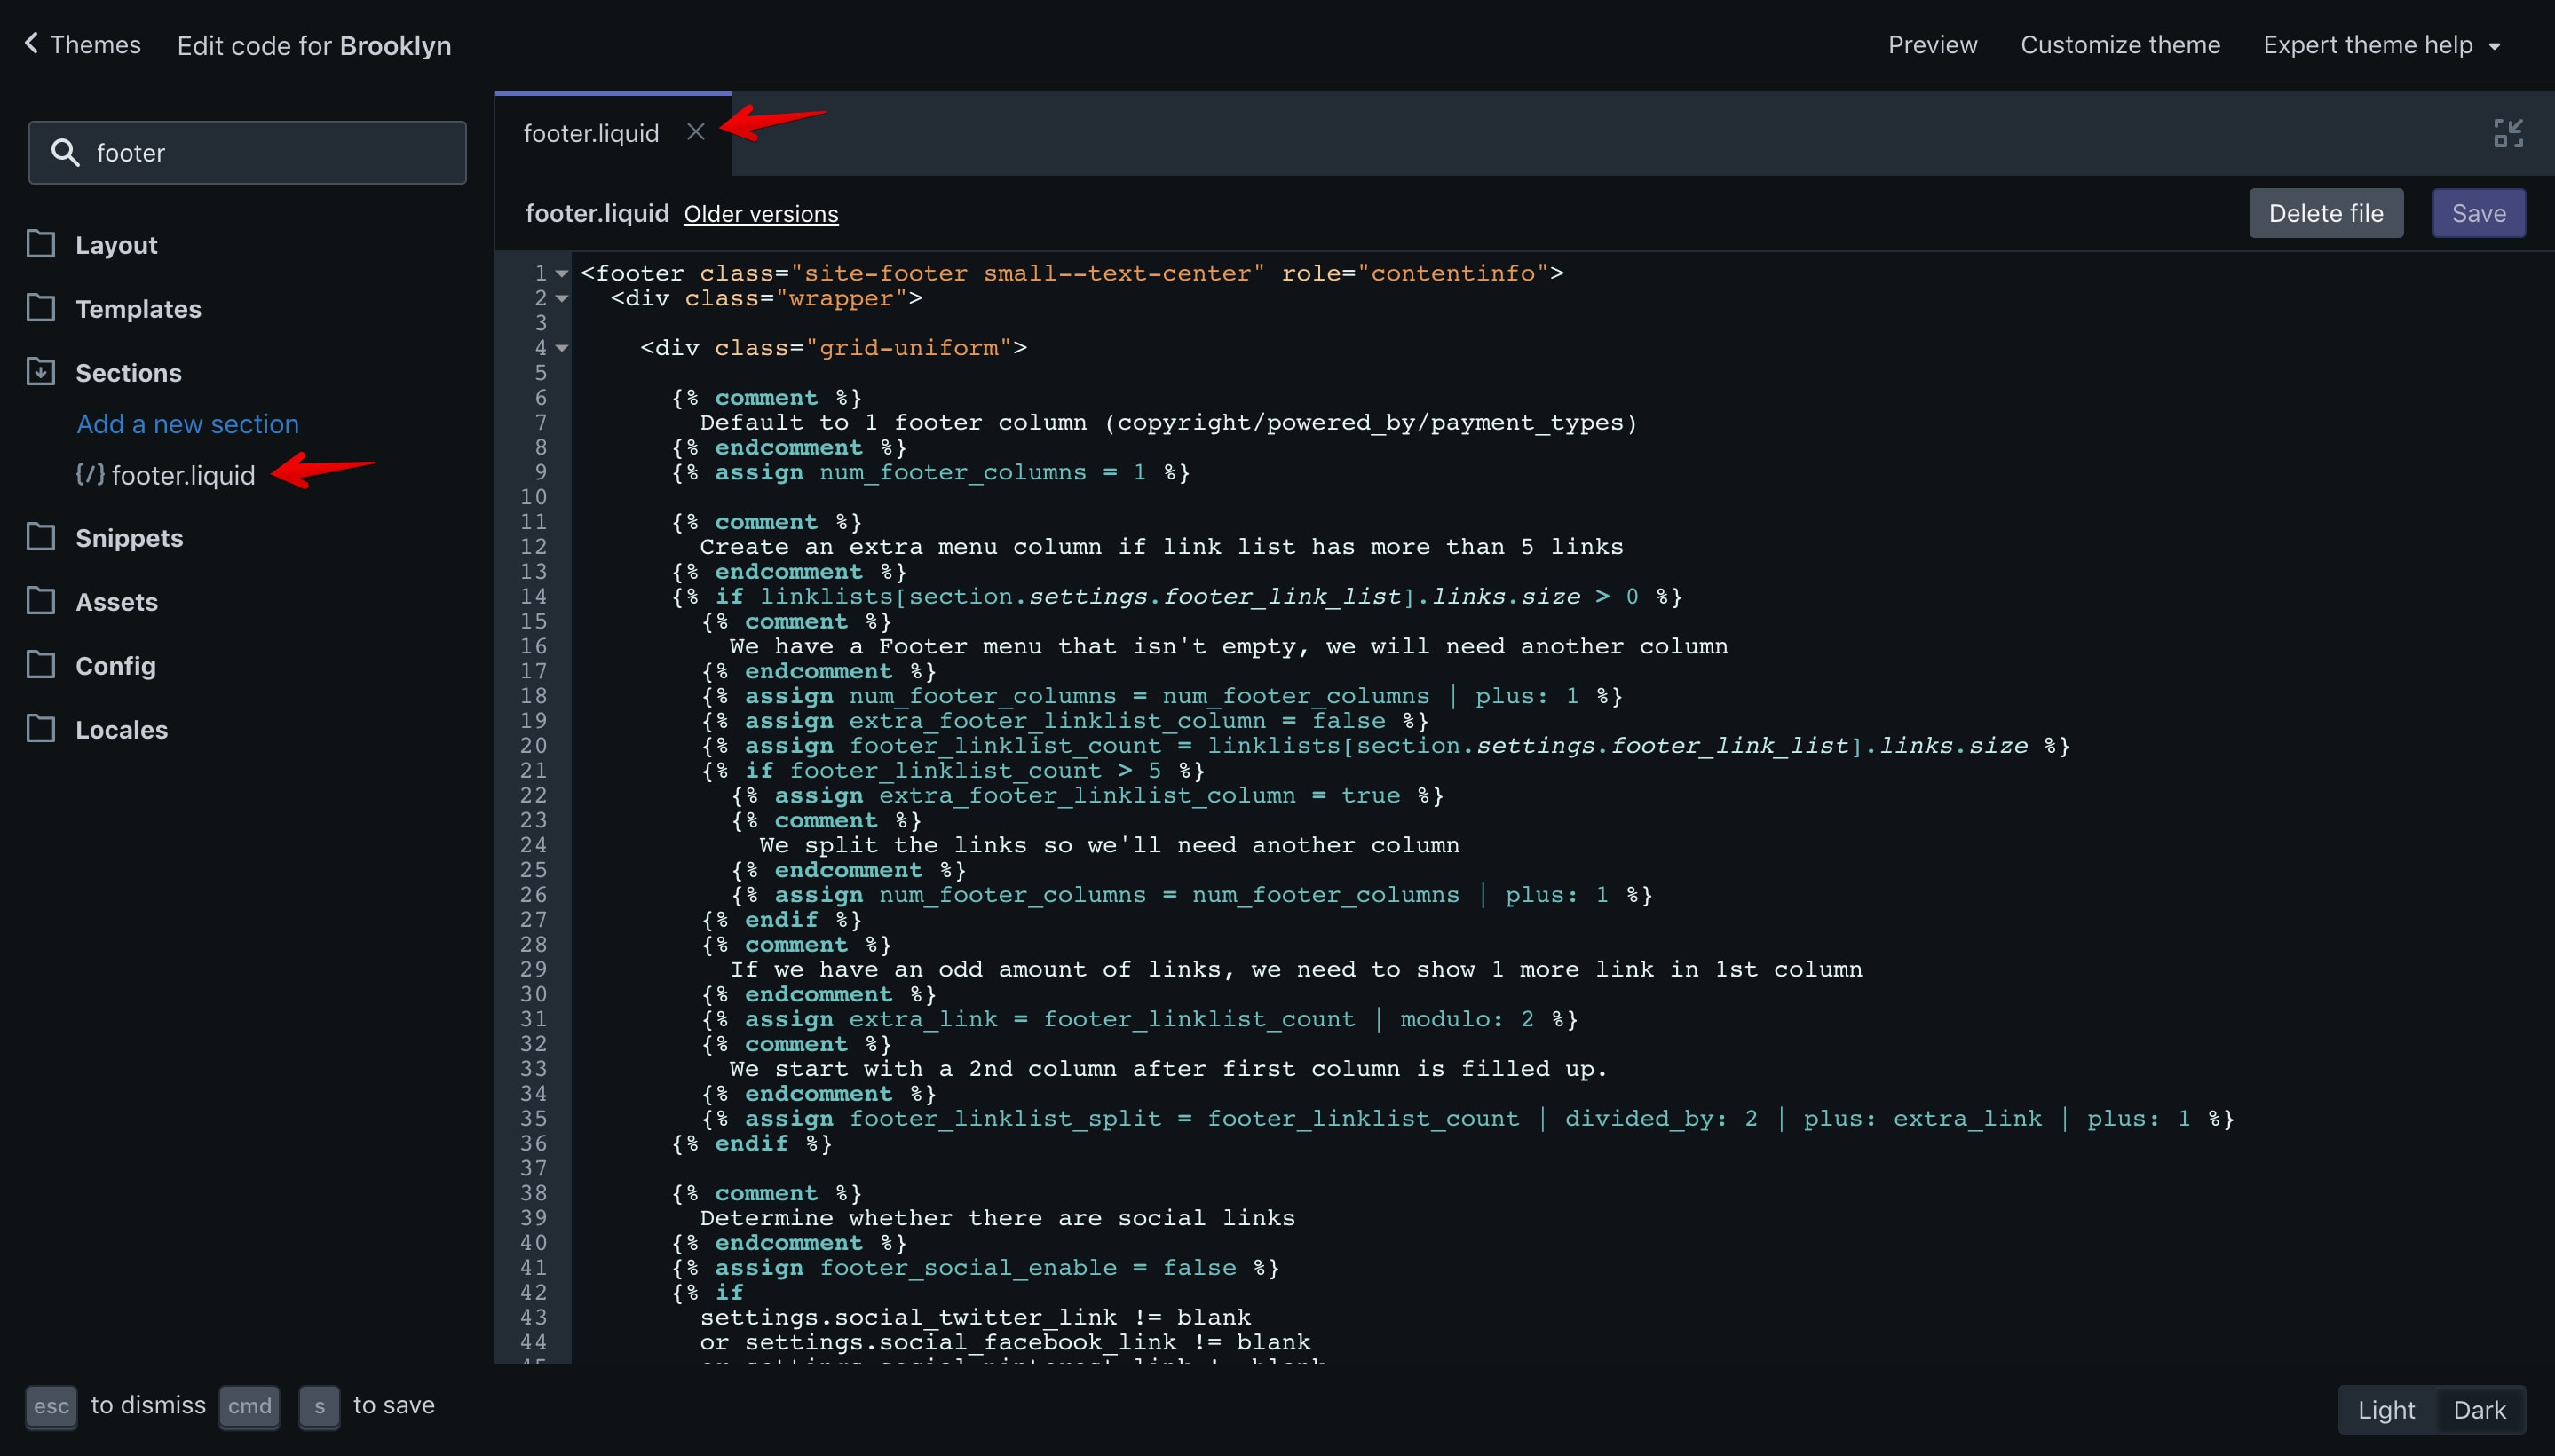 """Brooklyn theme """"footer.liquid"""" file opened in the code editor."""